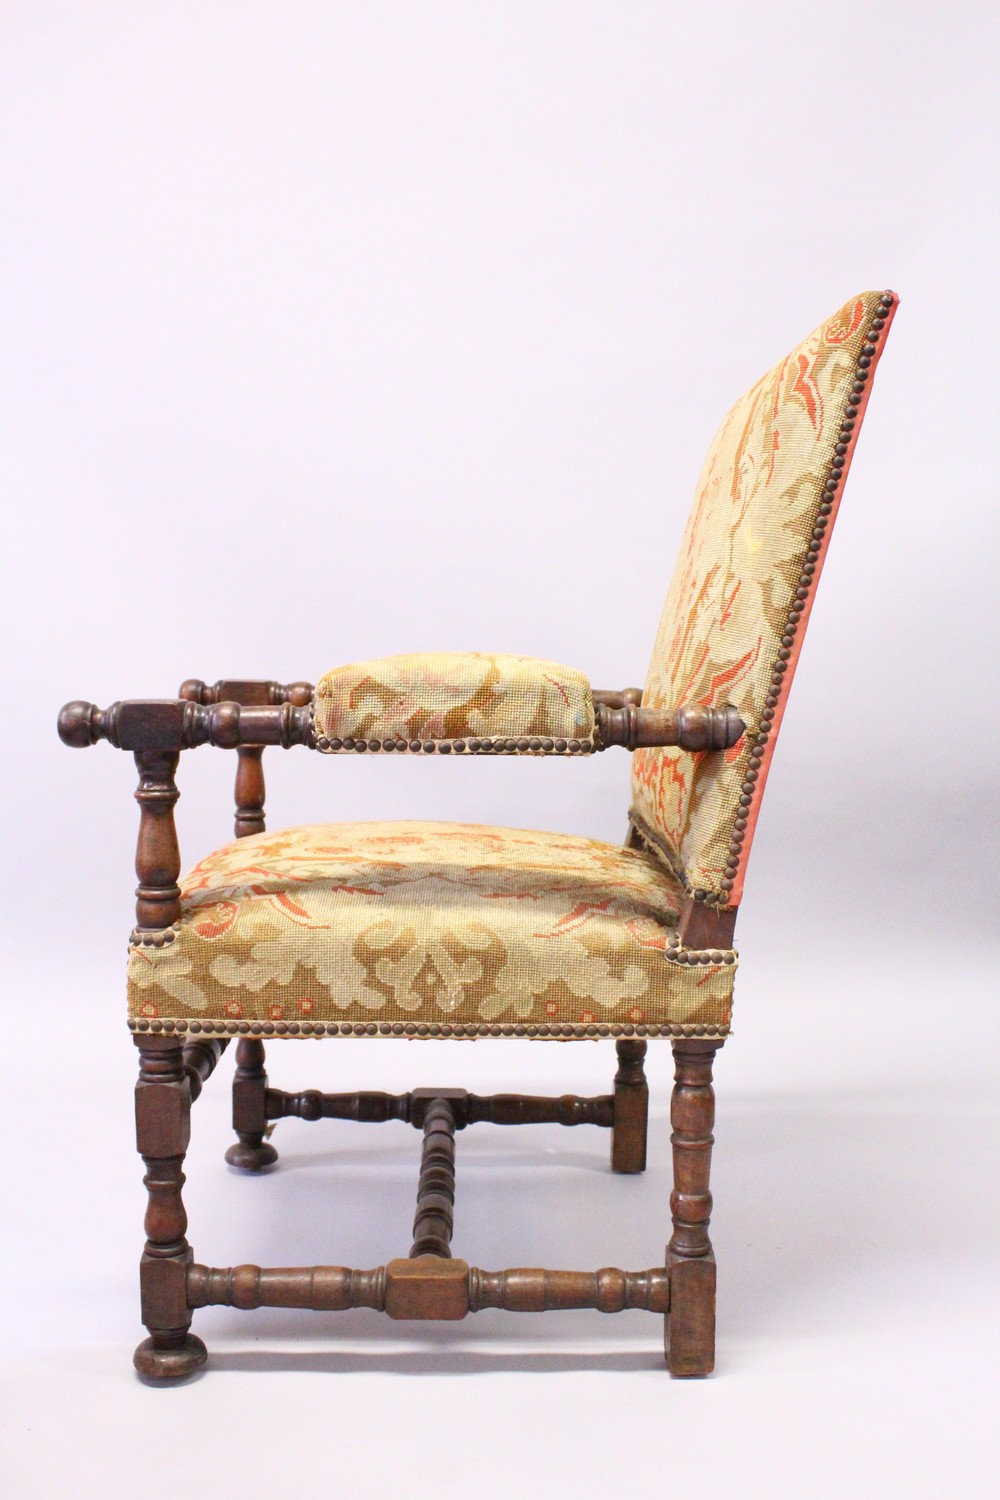 Lot 1019 - A GOOD PAIR OF 19TH CENTURY WALNUT FRAMED OPEN ARMCHAIRS, with tapestry upholstered backs, arms